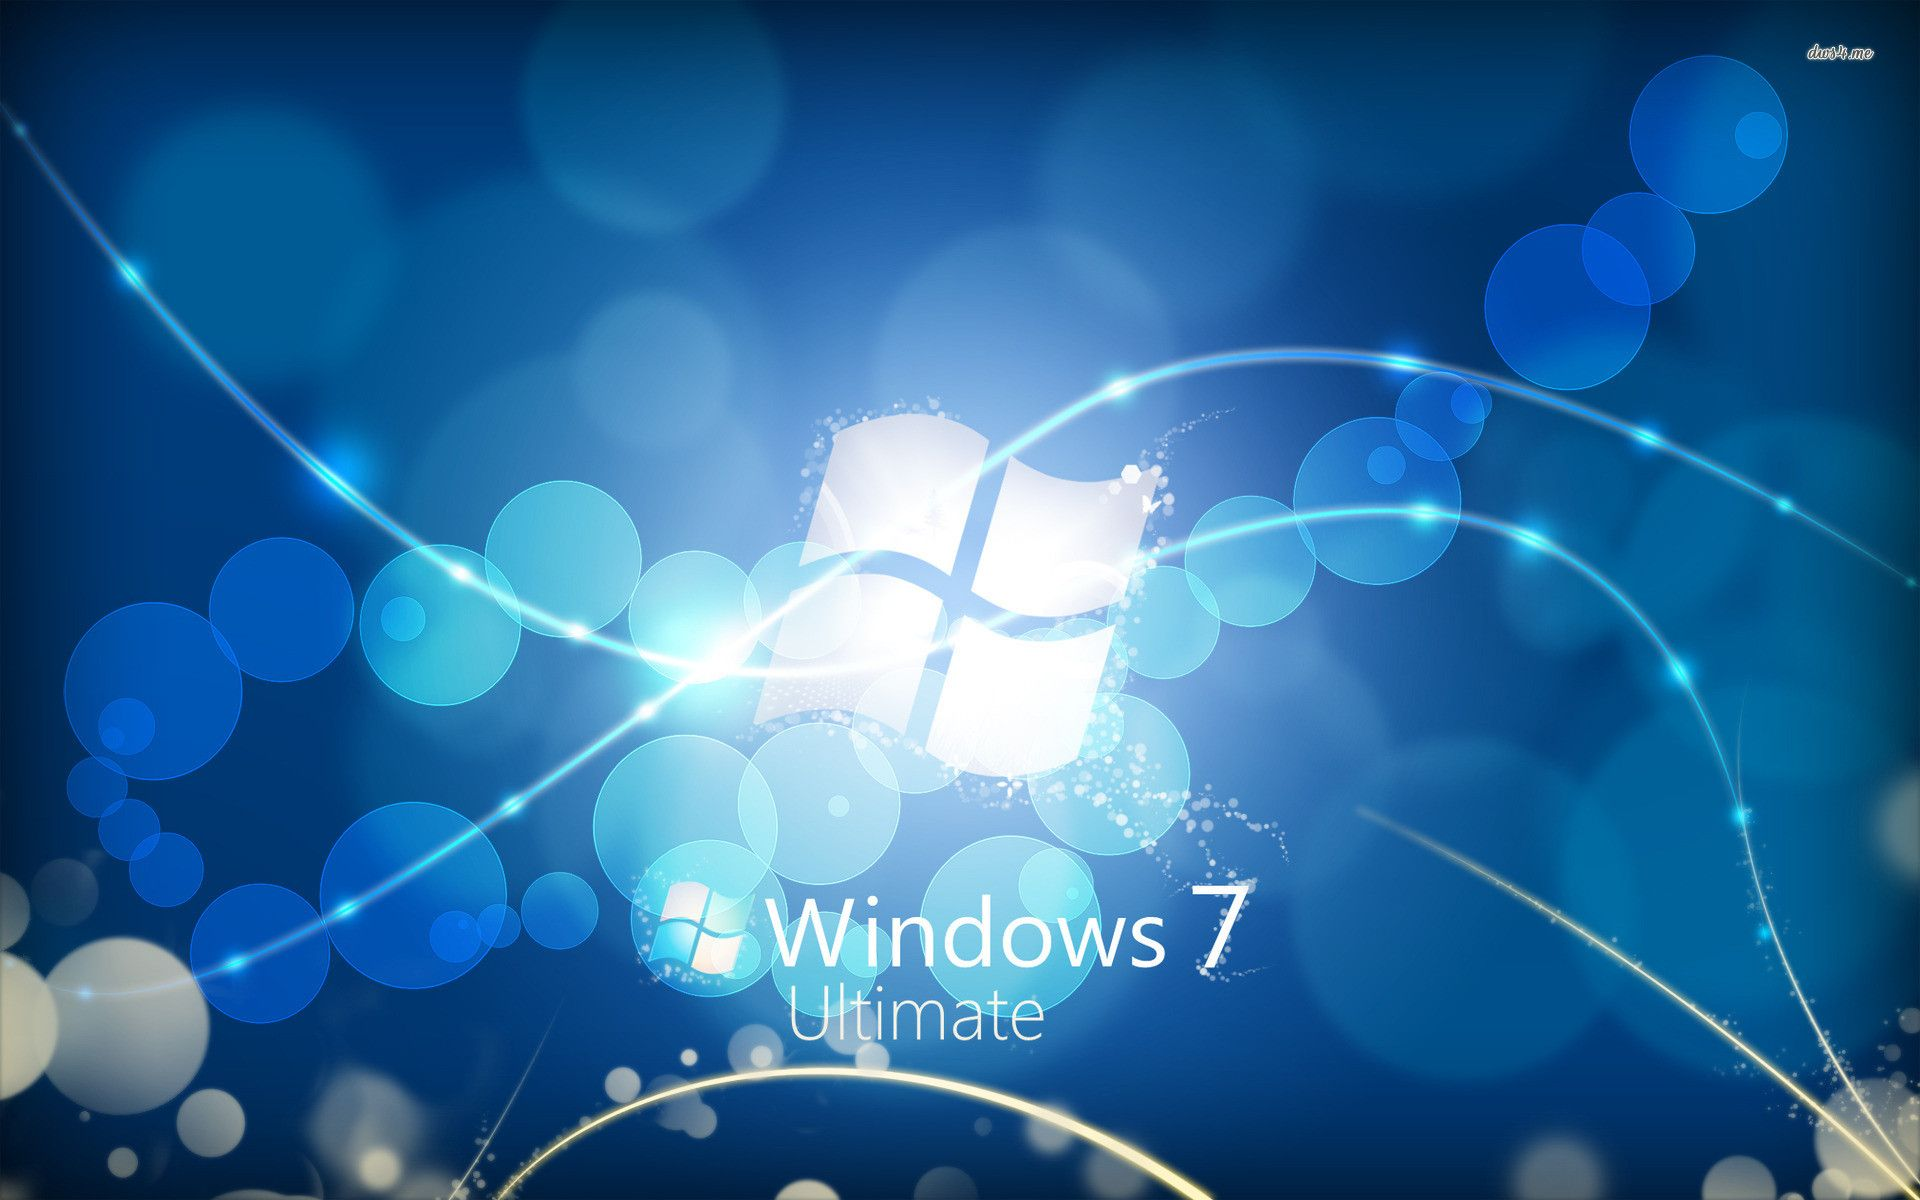 windows 7 ultimate wallpaper widescreen wallpapersafari